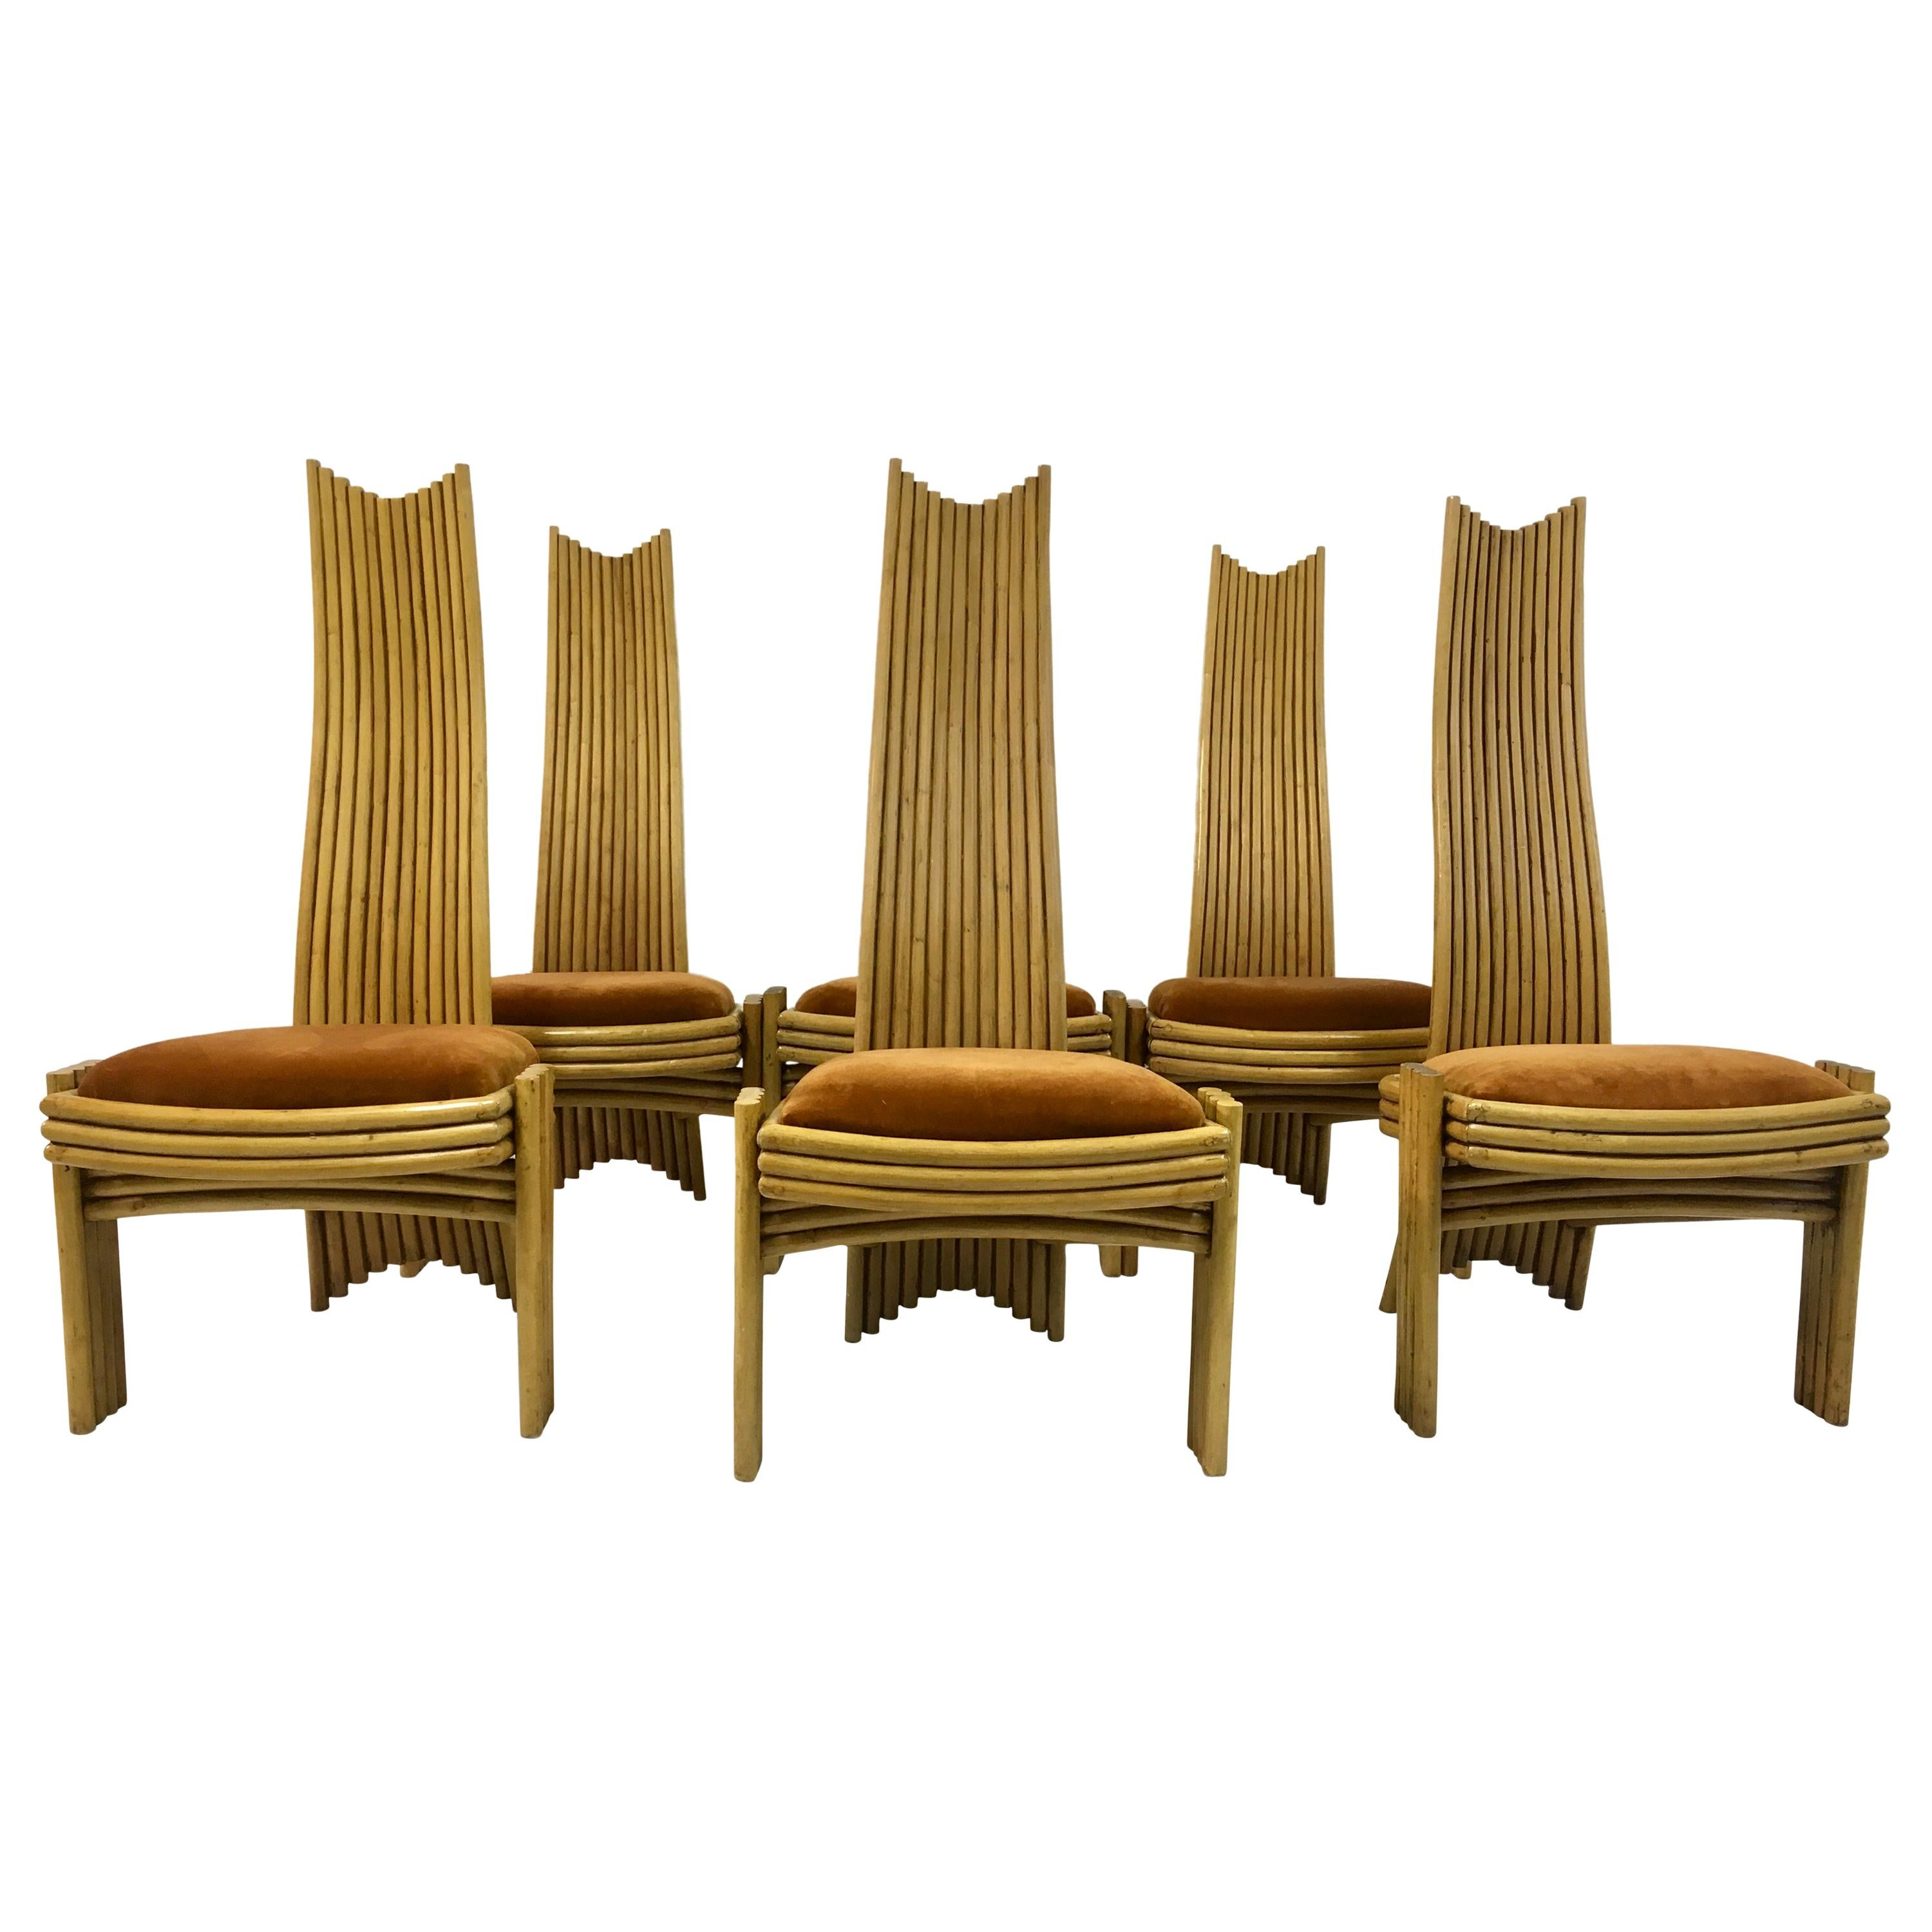 Vintage Set of Six 1970s Bamboo Dining Chairs